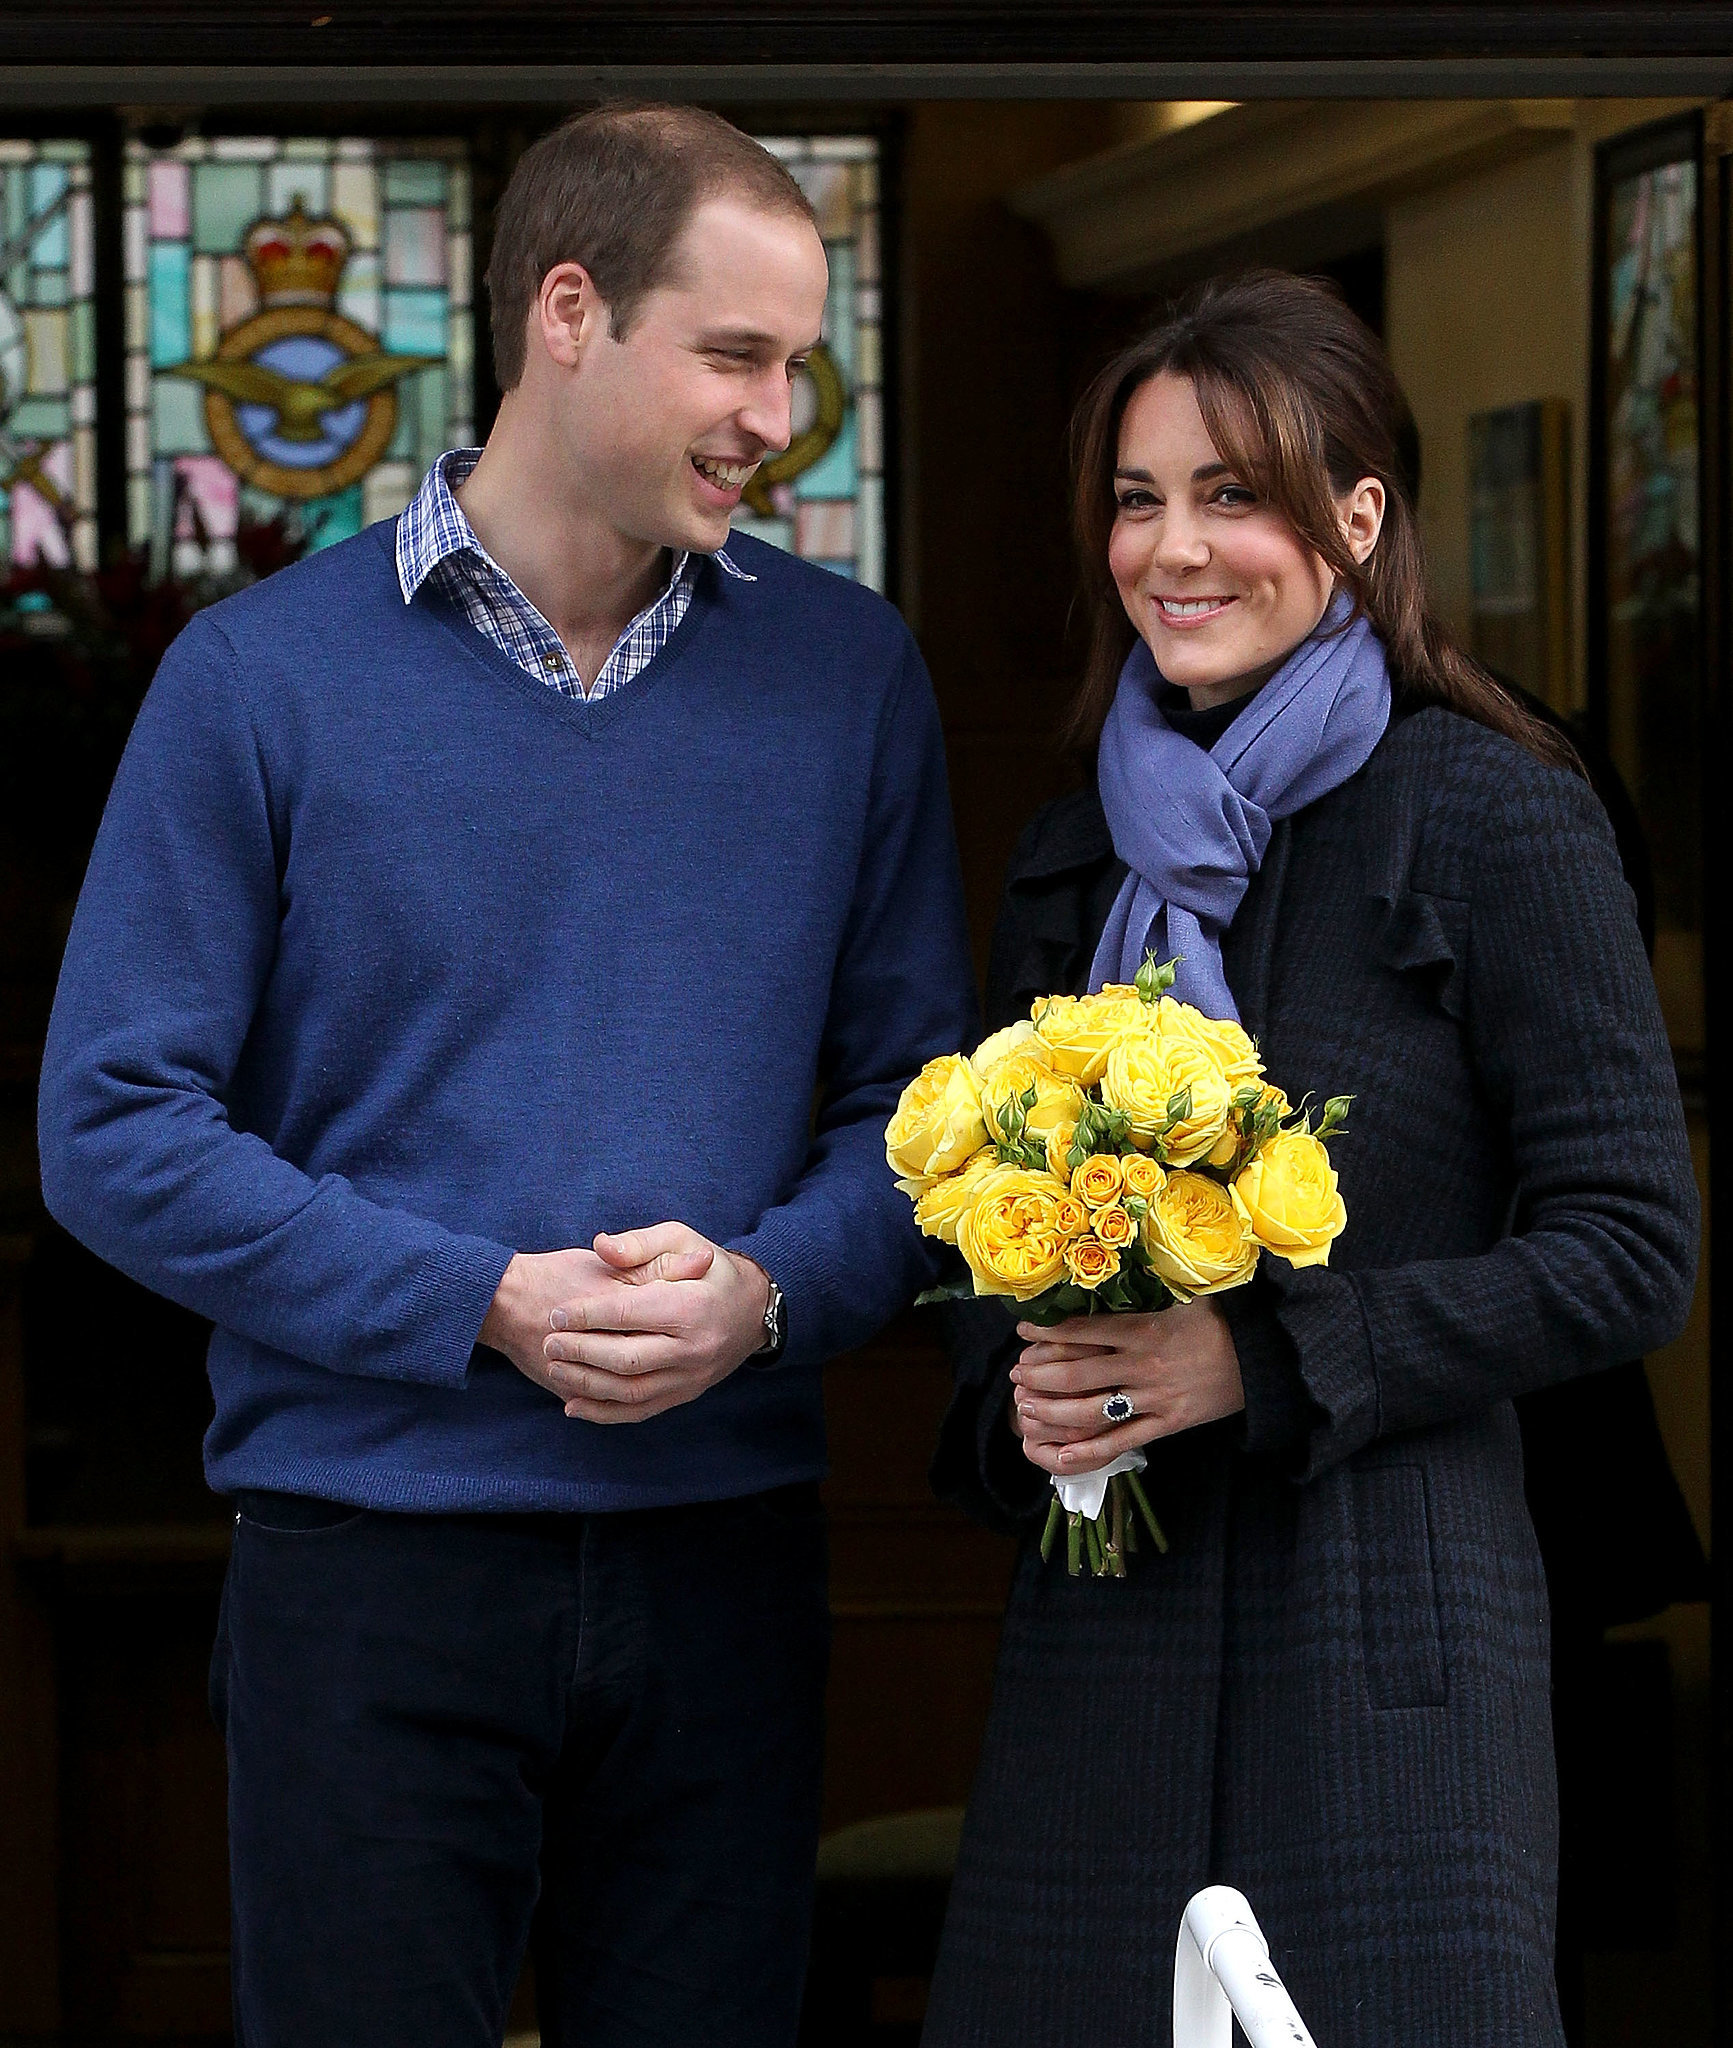 In December 2012, Prince William and Kate Middleton looked thrilled to leave the King Edward VII hospital in London after Kate was admitted for acute morning sickness.